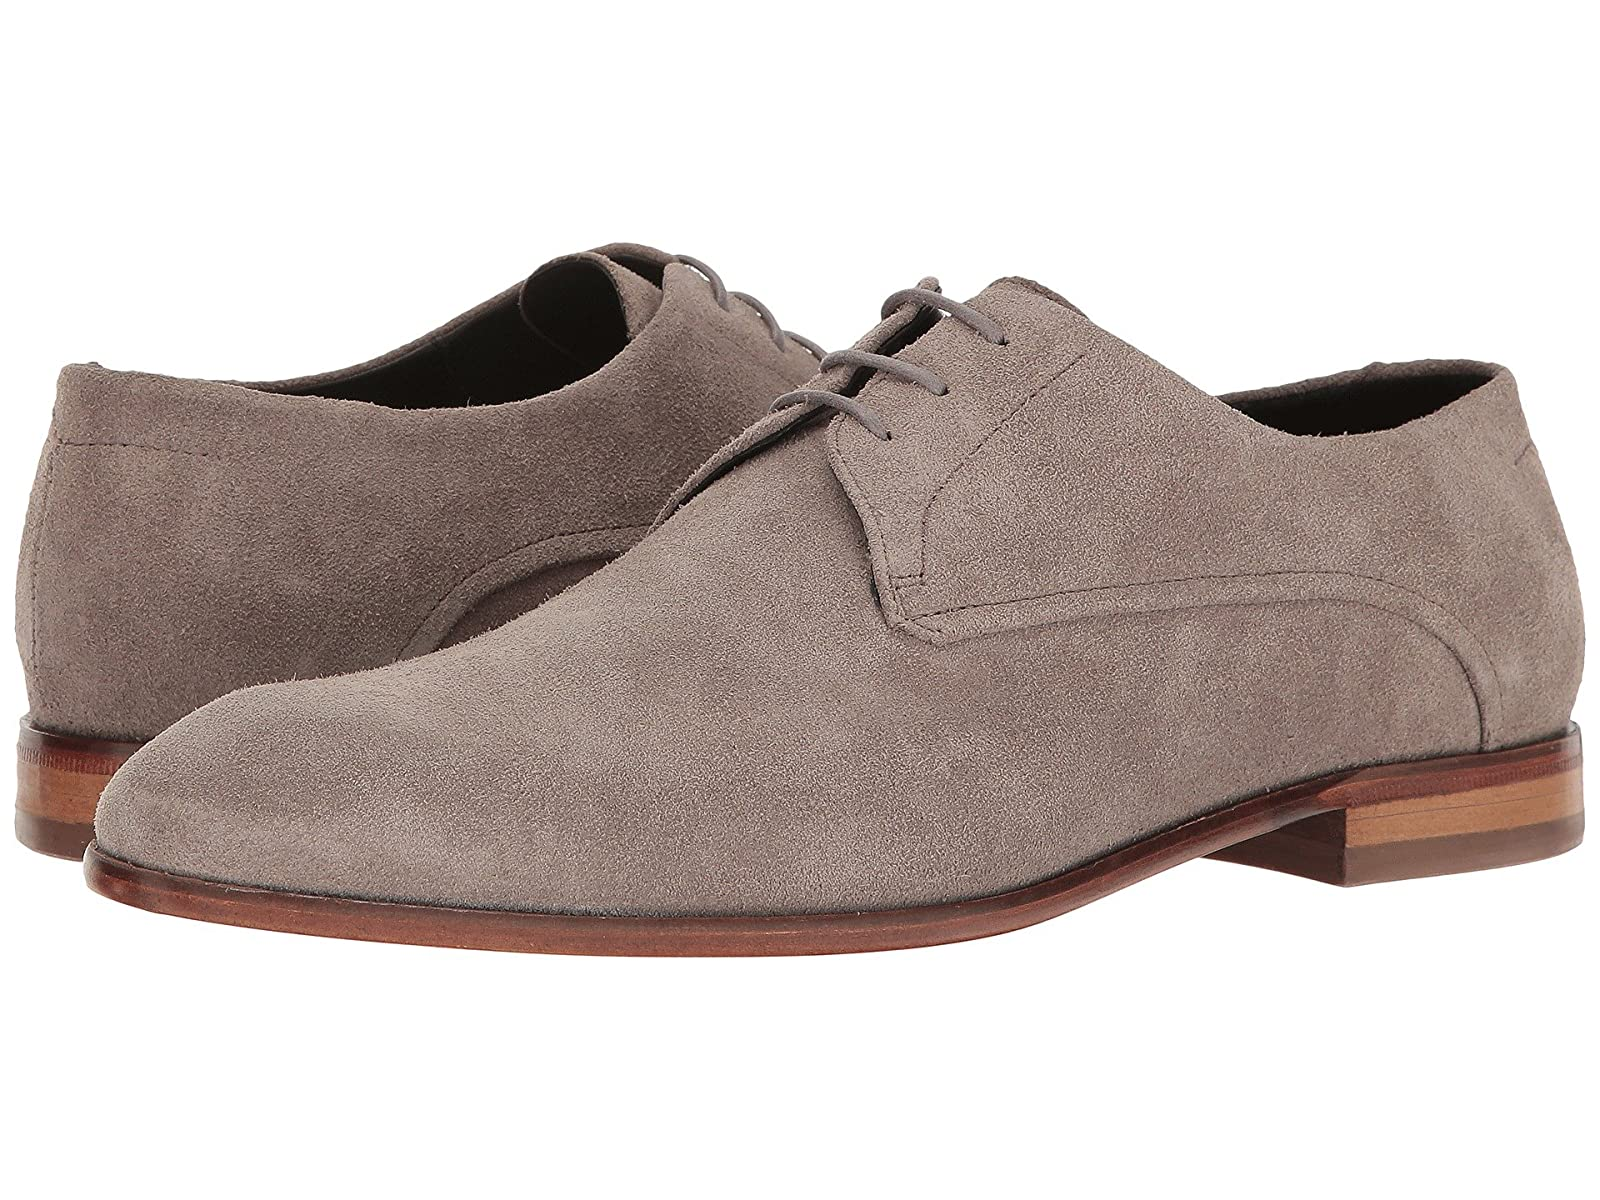 BOSS Hugo Boss Dress Appeal Lace-Up Derby by HUGOCheap and distinctive eye-catching shoes